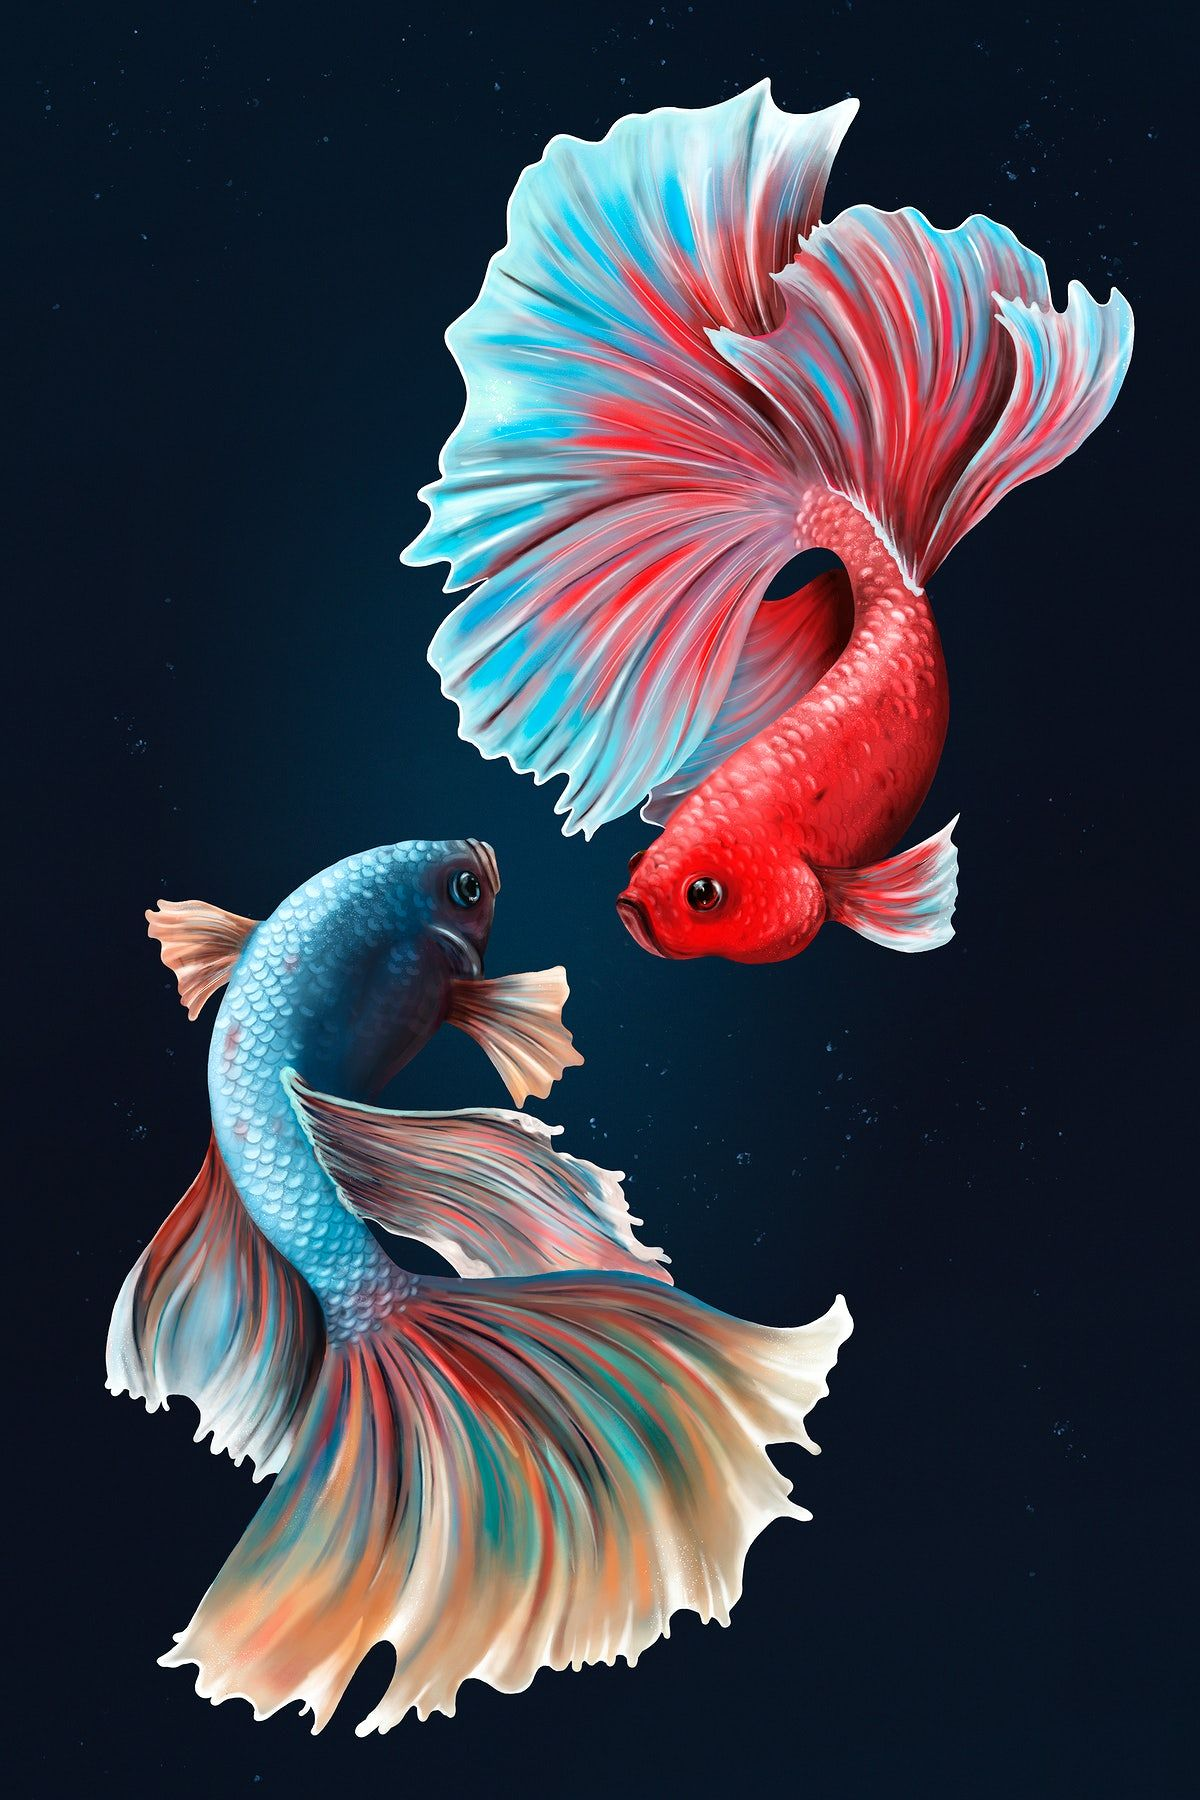 Download premium illustration of Betta fishes on a midnight blue